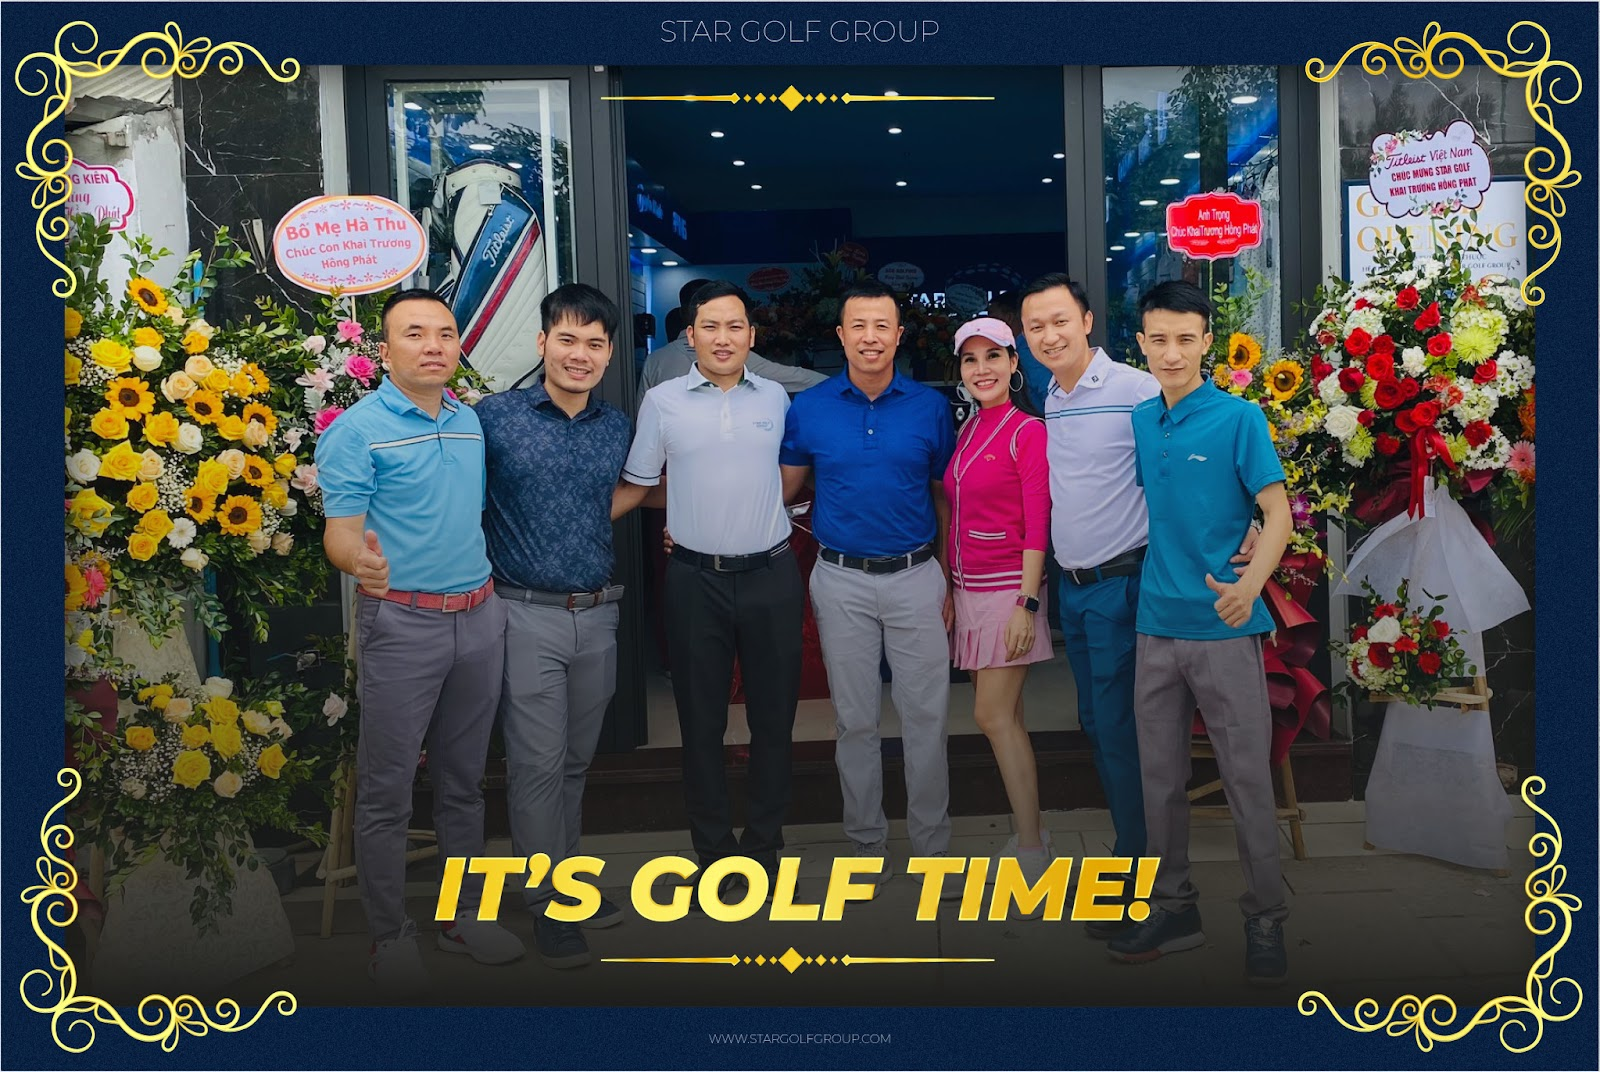 Star Golf Group - It's Golf Time